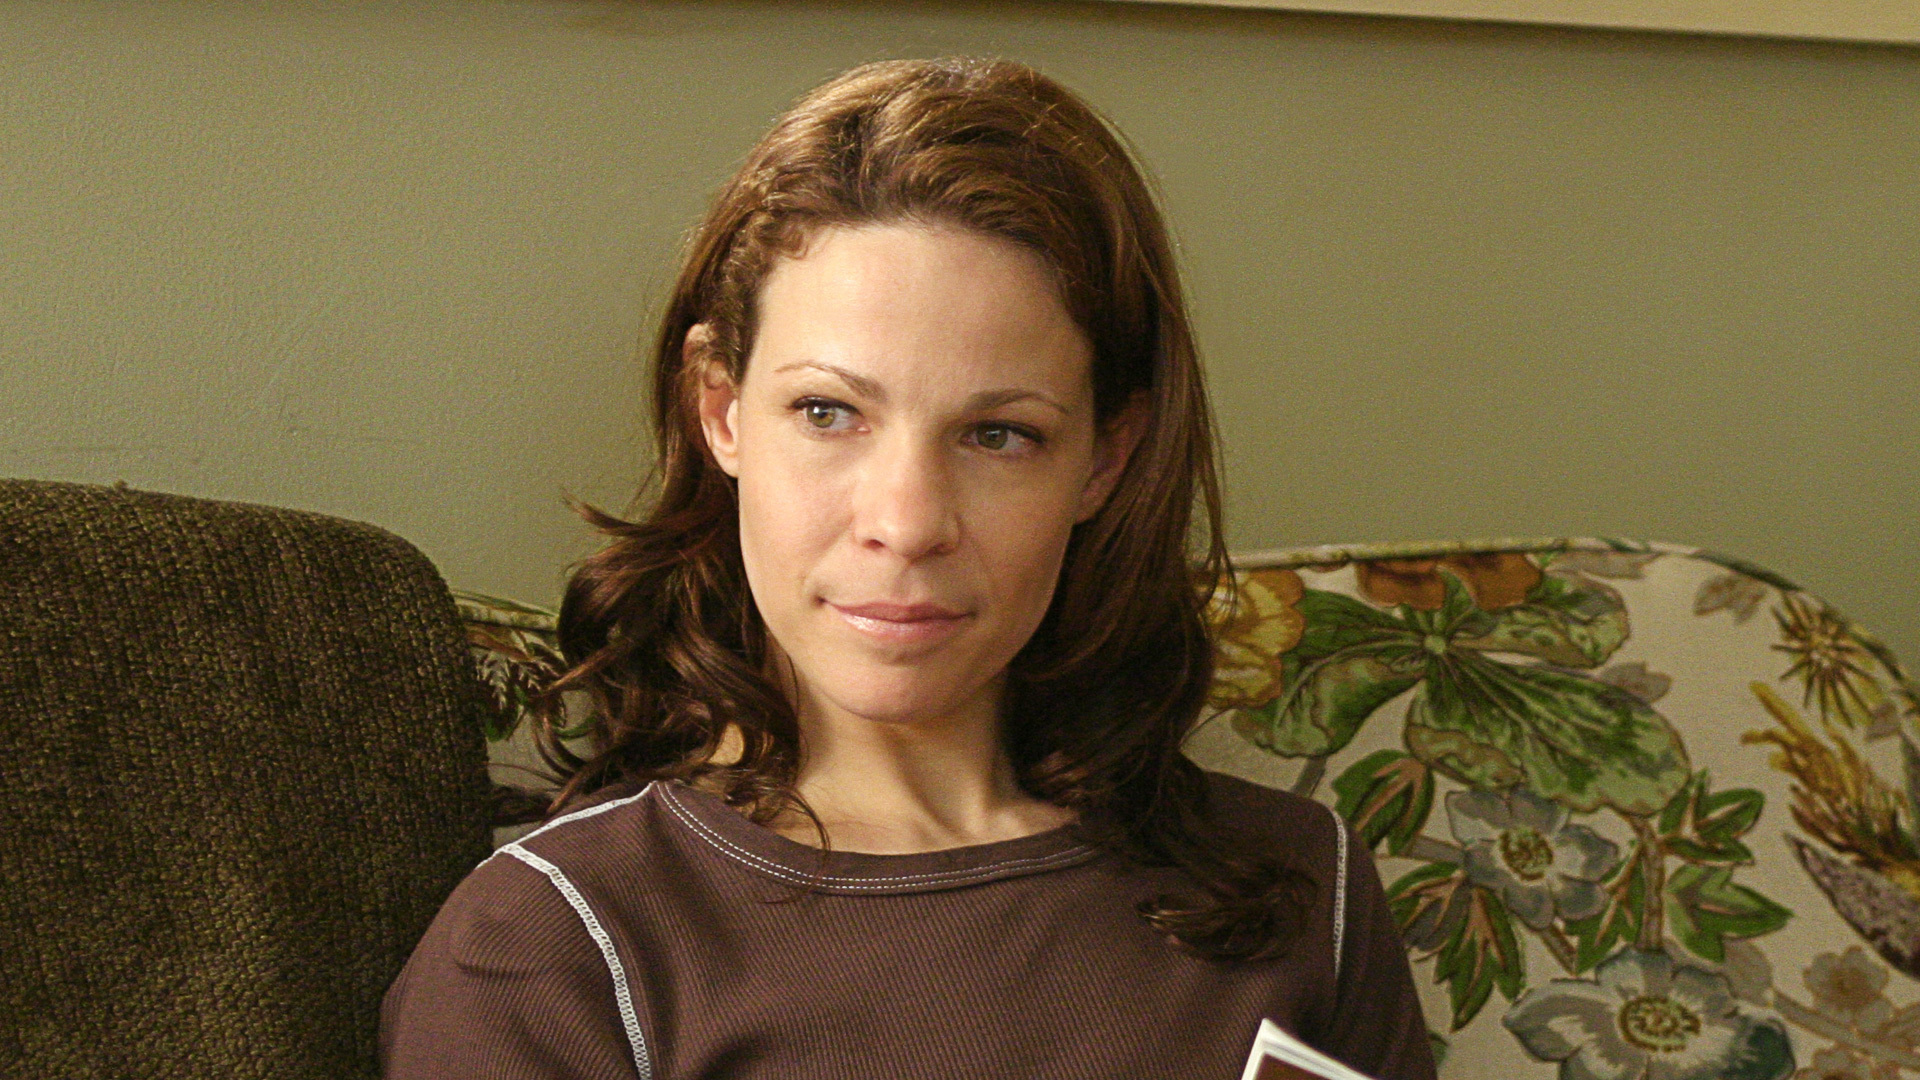 Lili Taylor Wallpapers Images Photos Pictures Backgrounds